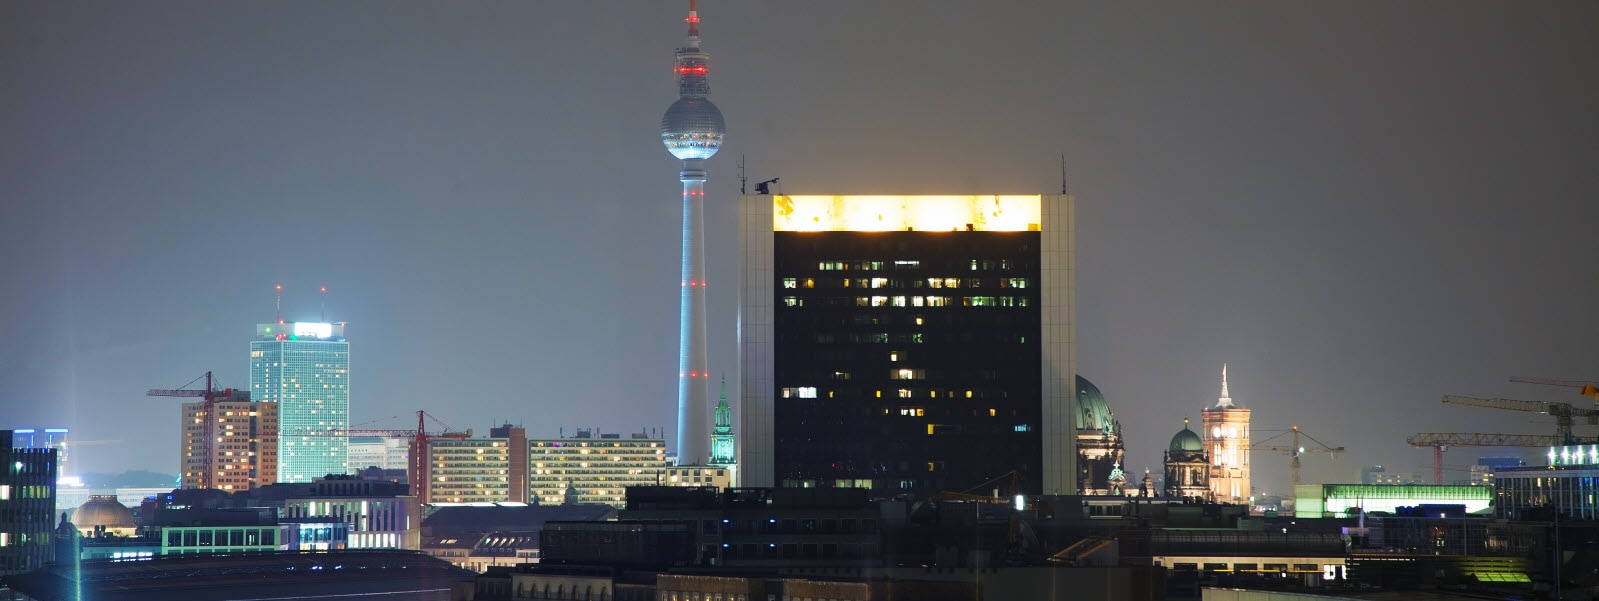 Overview of Berlin, Germany at night time. Photo: Mostphotos.com